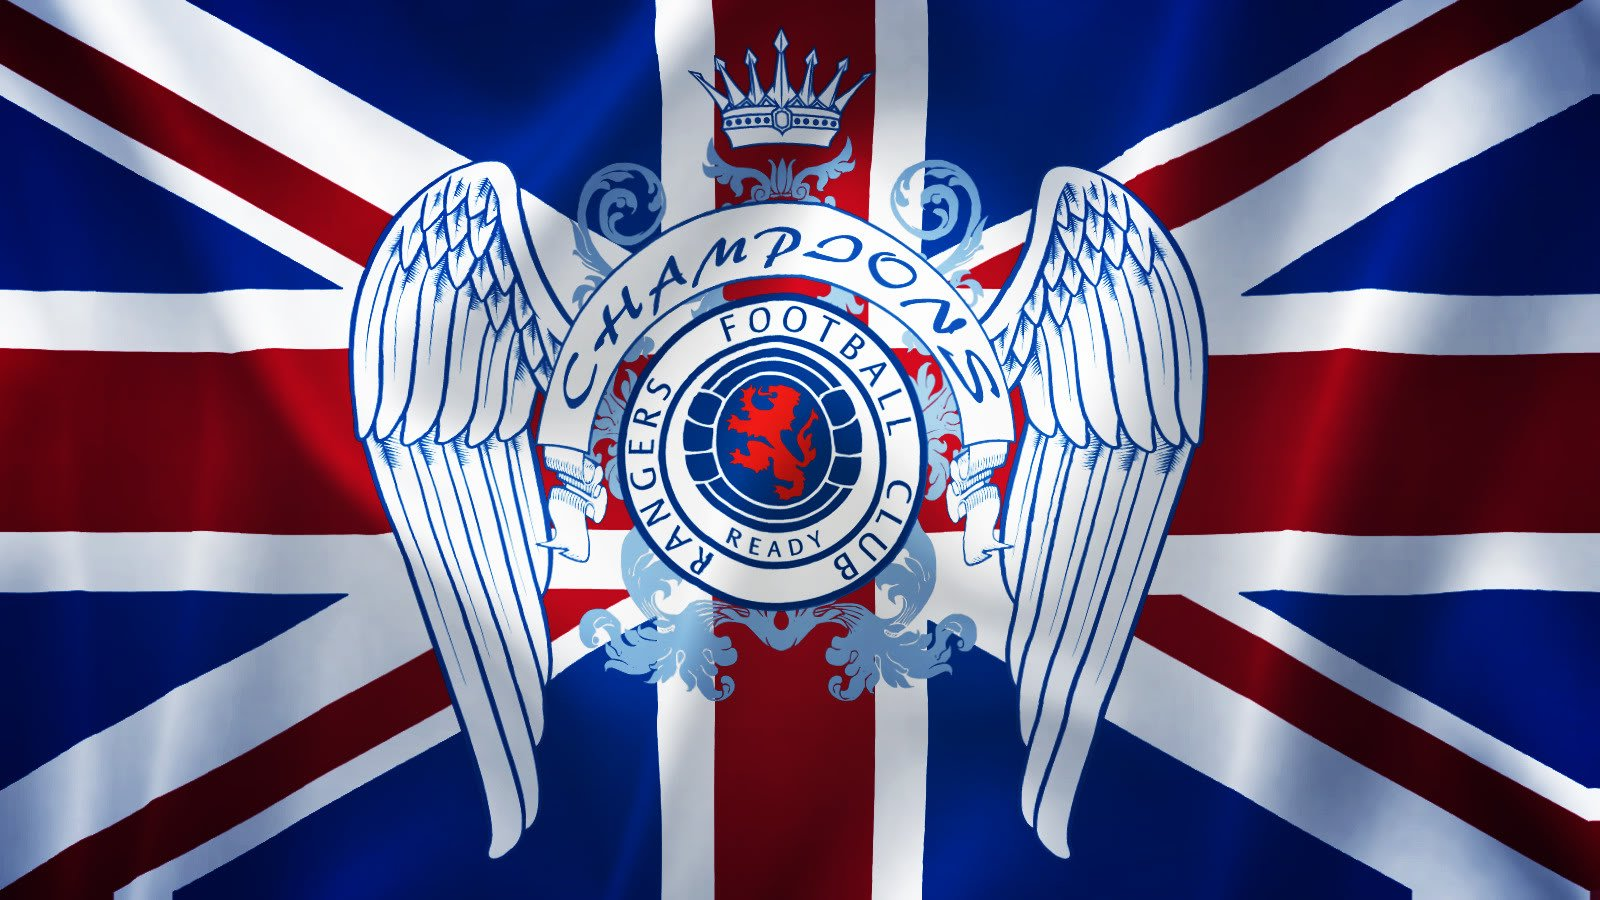 Free glasgow rangers HD Wallpapers | mobile9